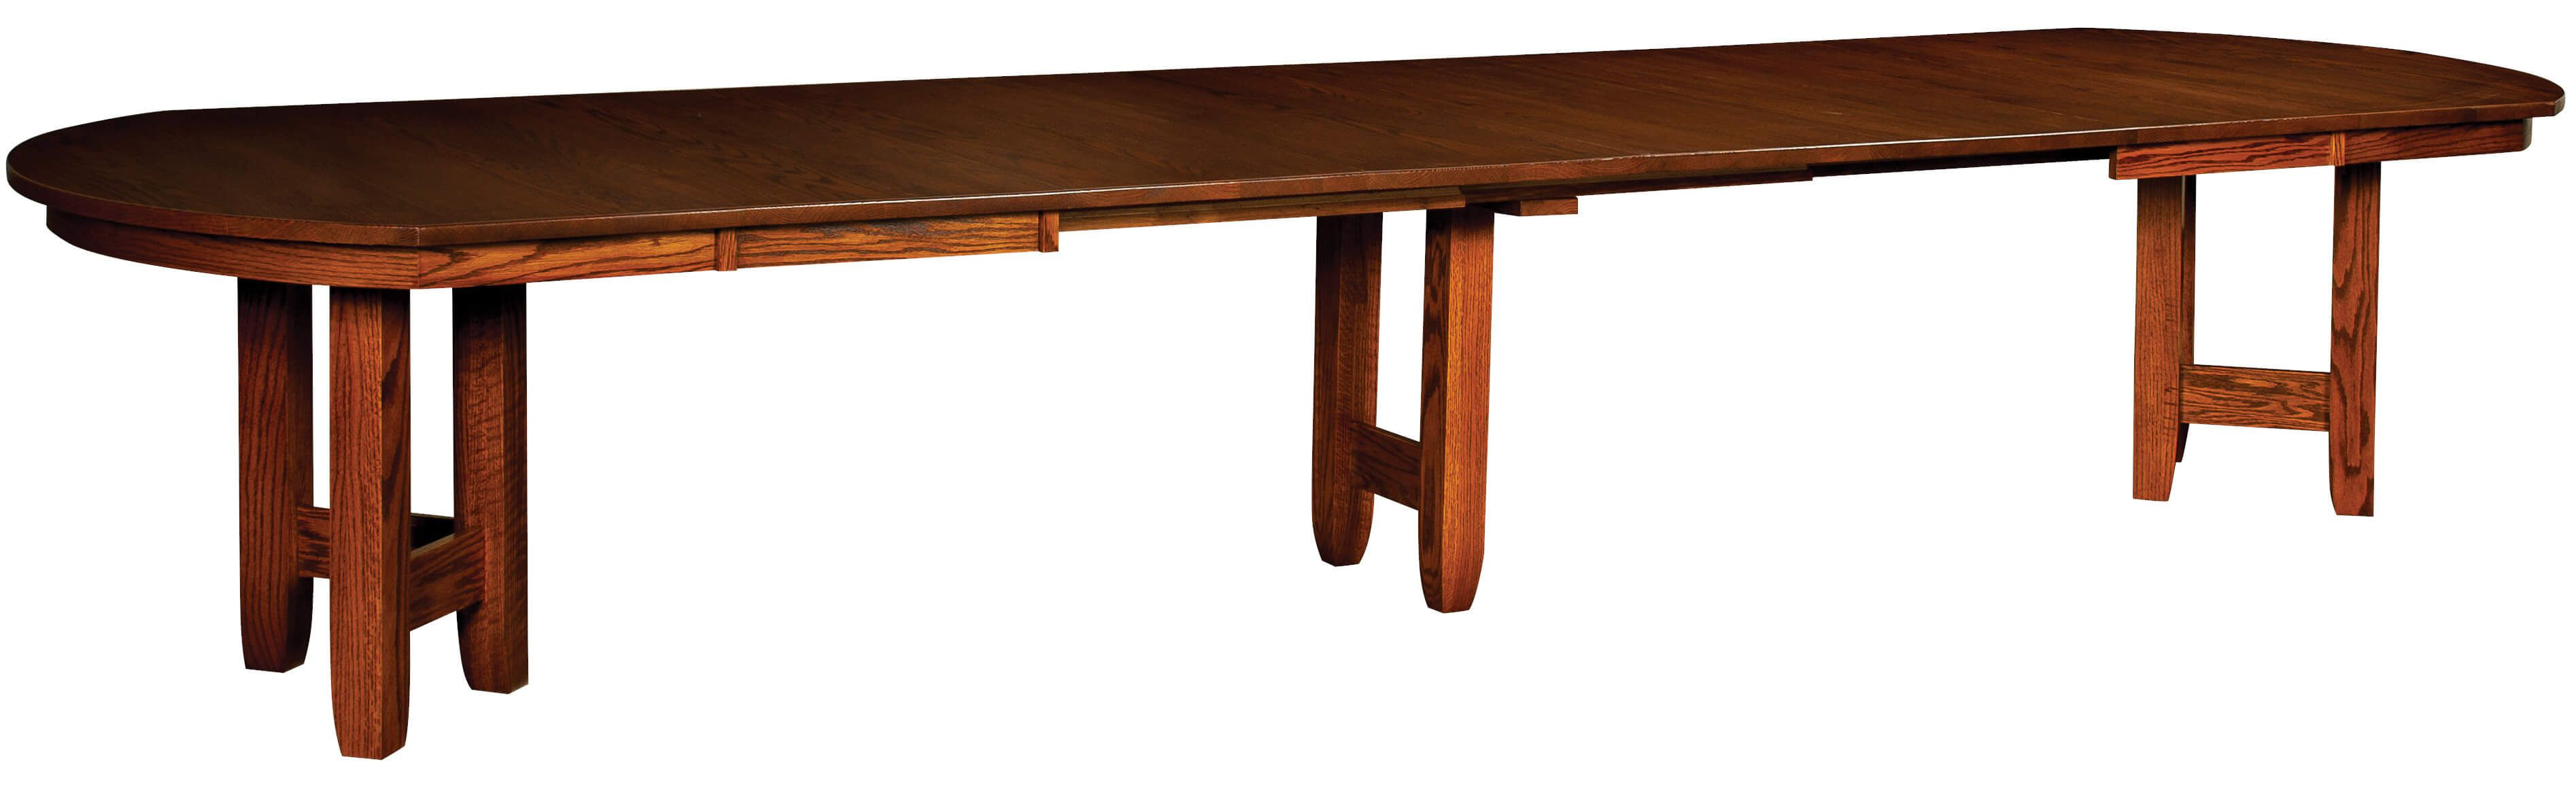 Fully Extended Riedel Oval Dining Room Table